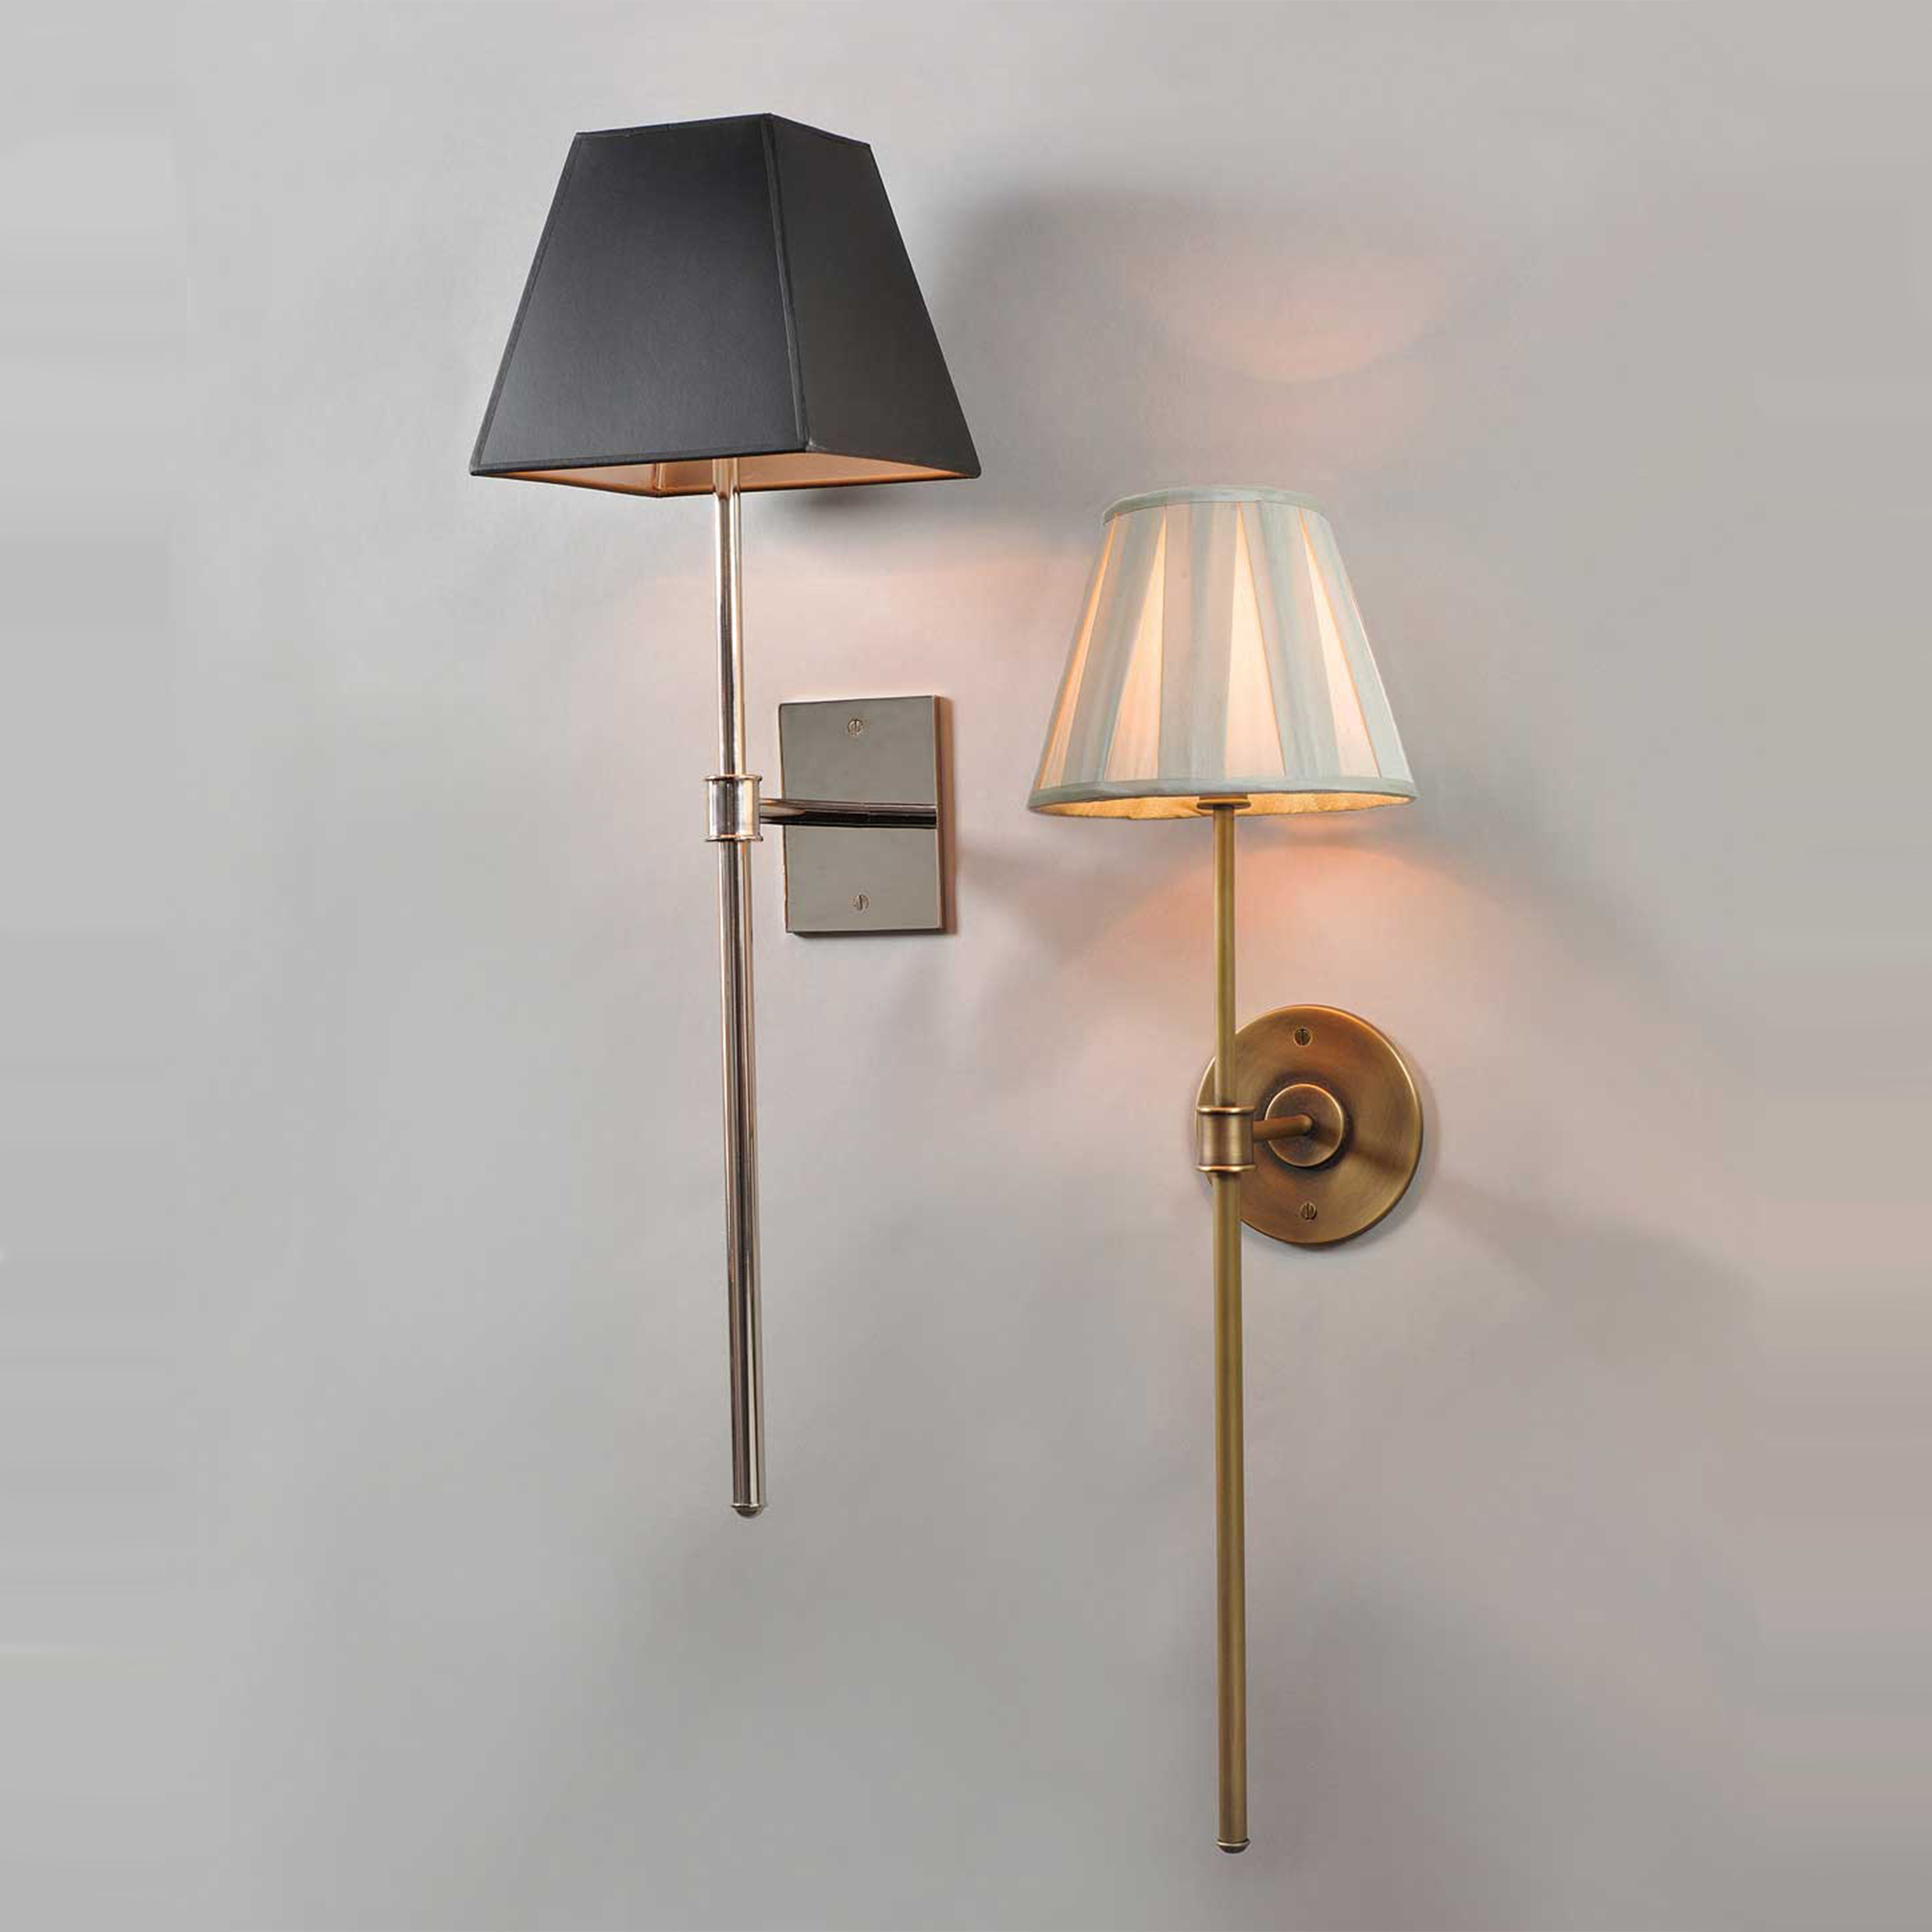 The Urban Electric Company S Melissa Wall Sconce Shown In